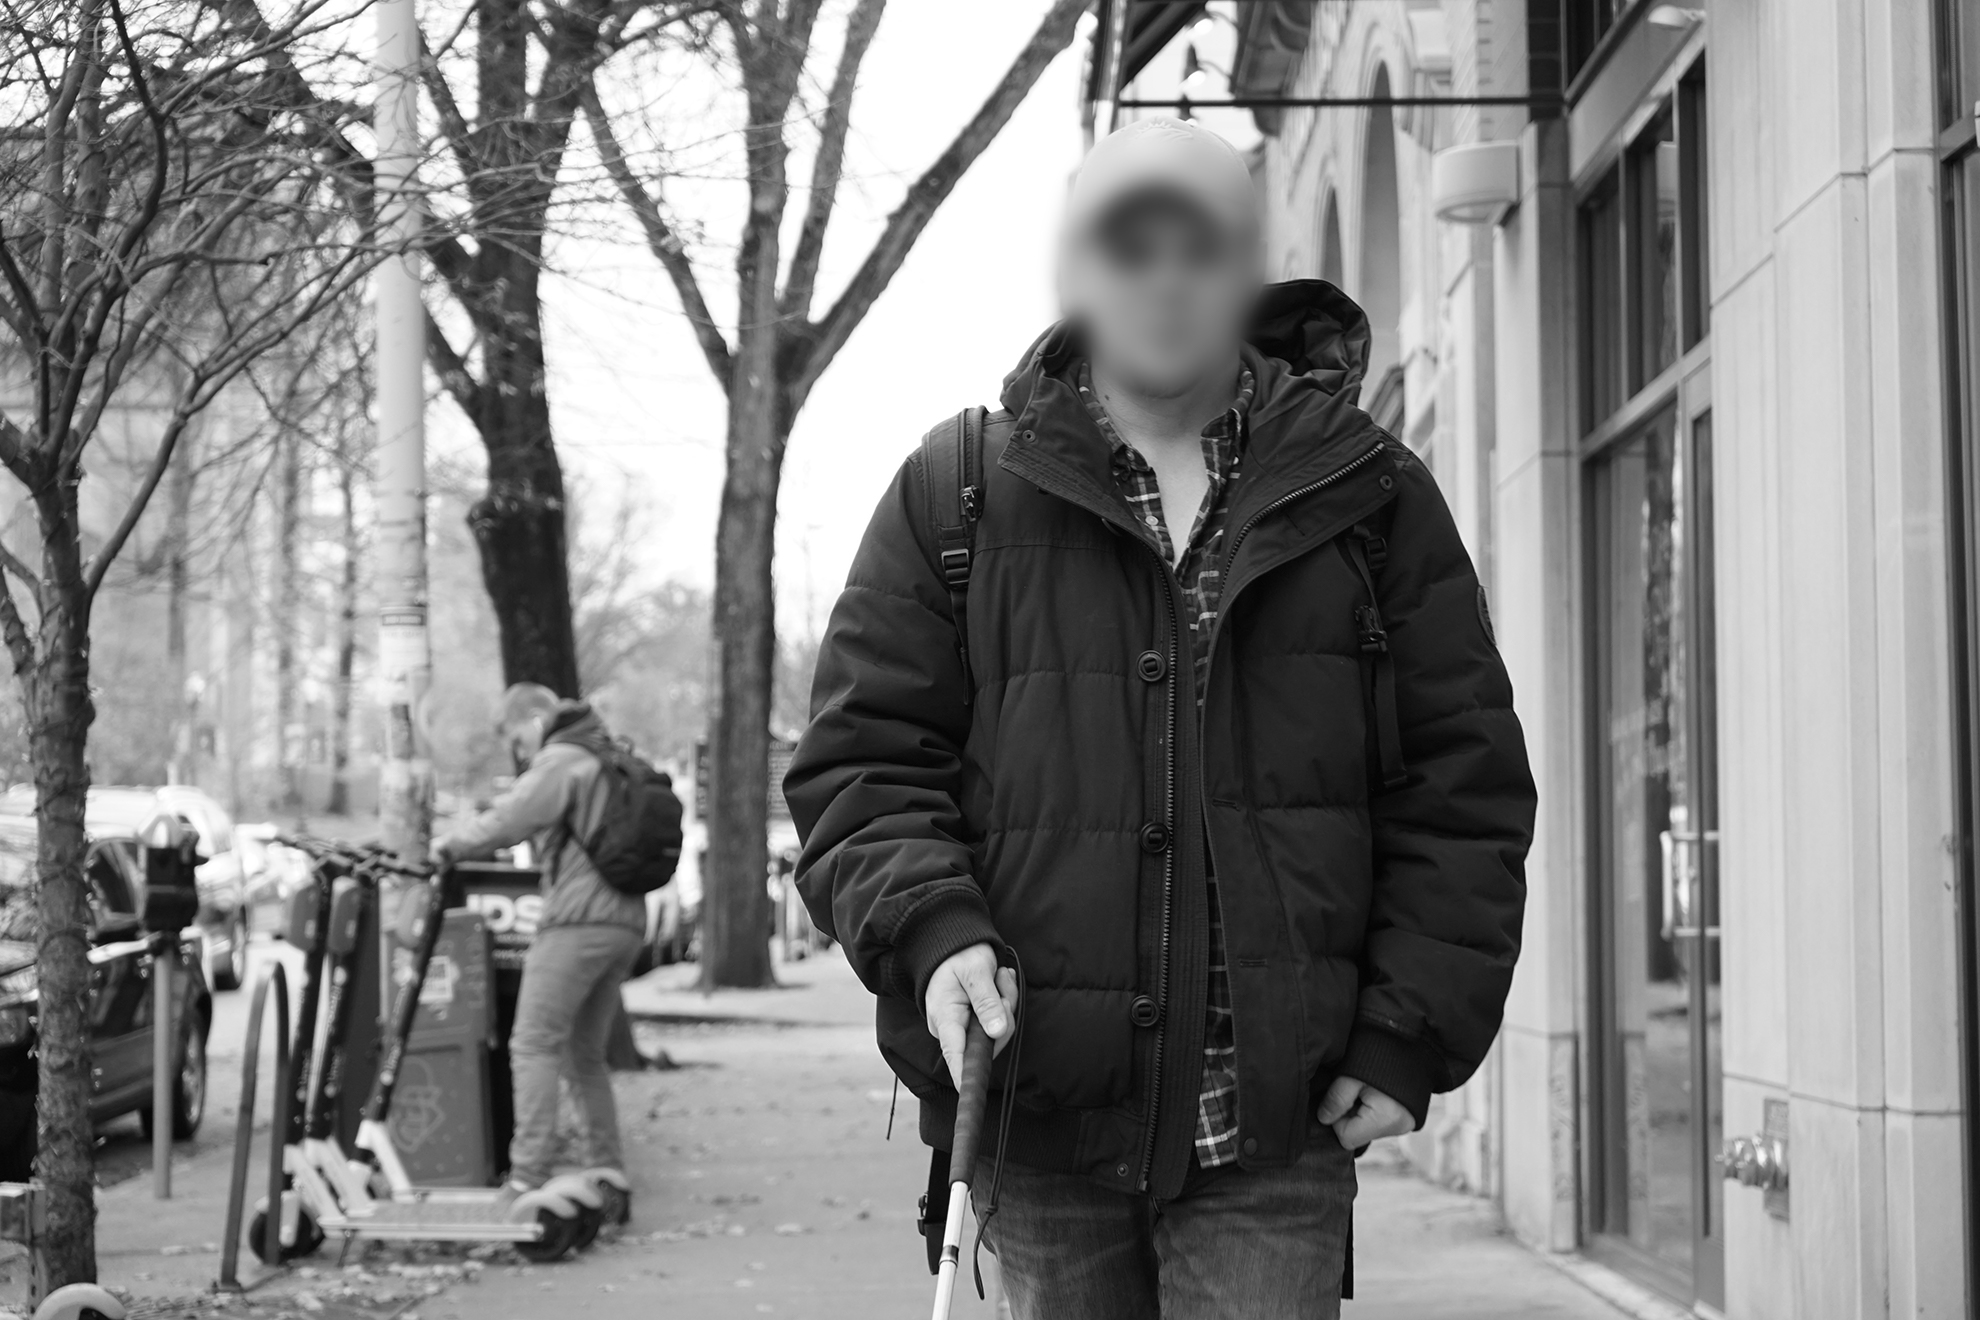 Image of a visually impaired participant walking on a sidewalk with a walking stick.